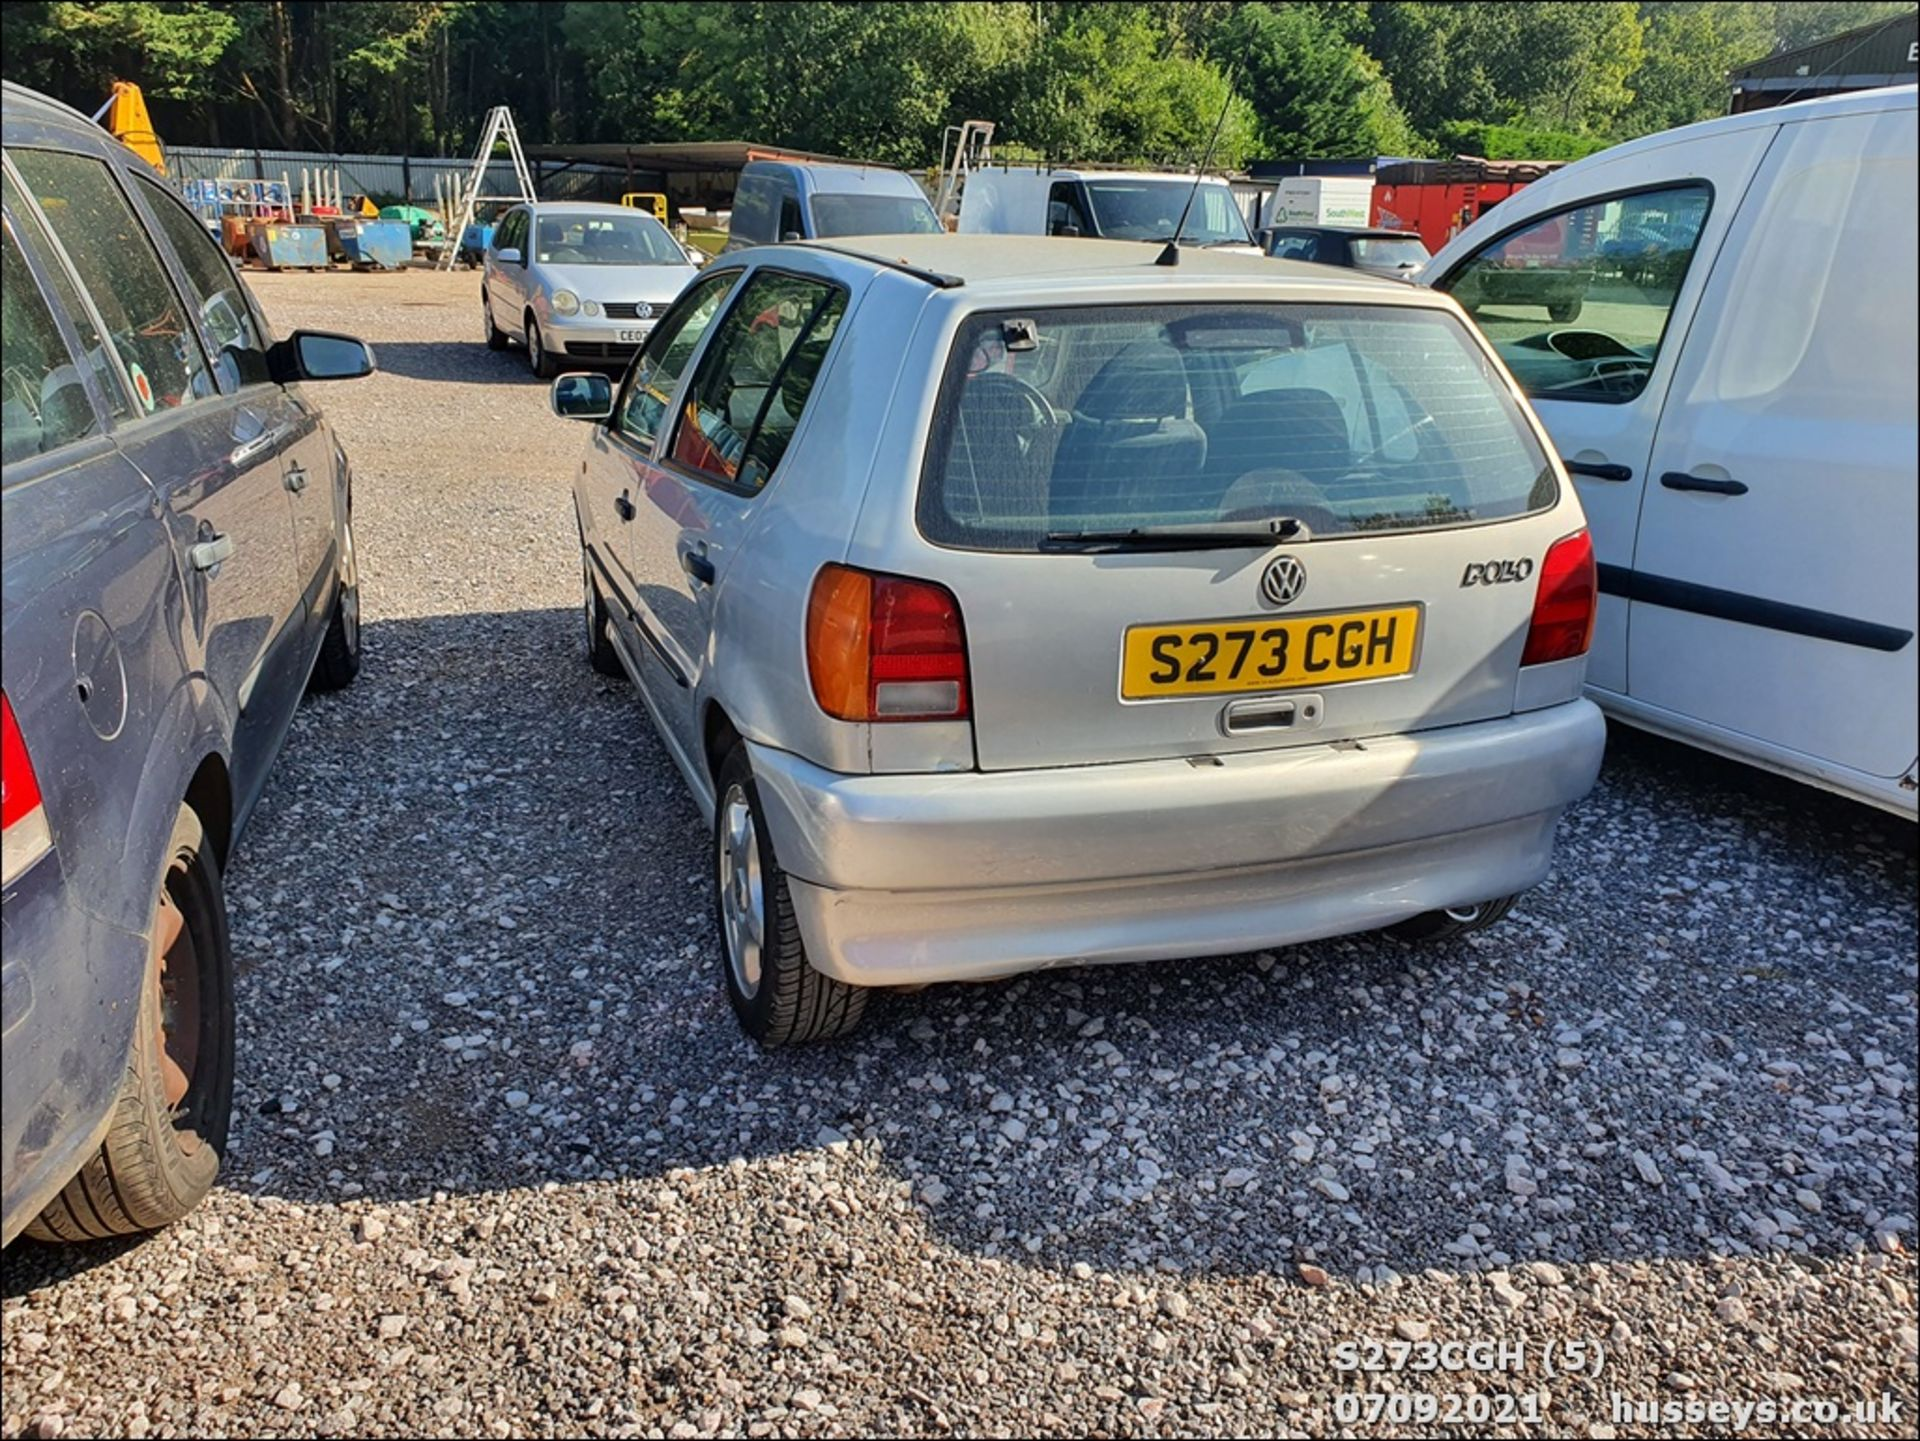 1998 VOLKSWAGEN POLO 1.6 GL AUTO - 1598cc 5dr Hatchback (Silver, 113k) - Image 5 of 13